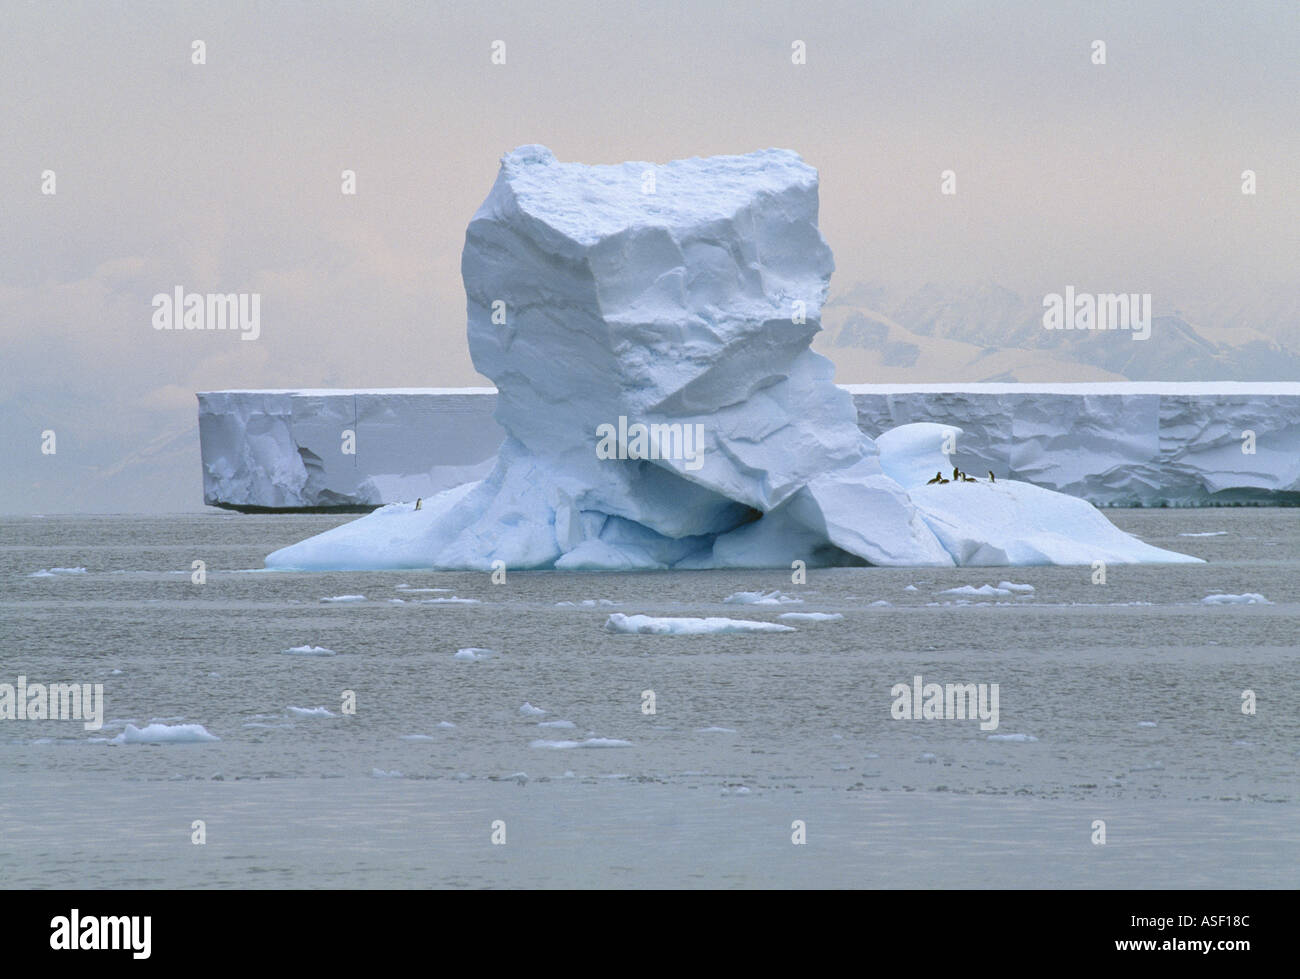 Iceberg with Adelie penguins Large tabular flat iceberg behind McMurdo Sound Ross Sea Antarctica - Stock Image